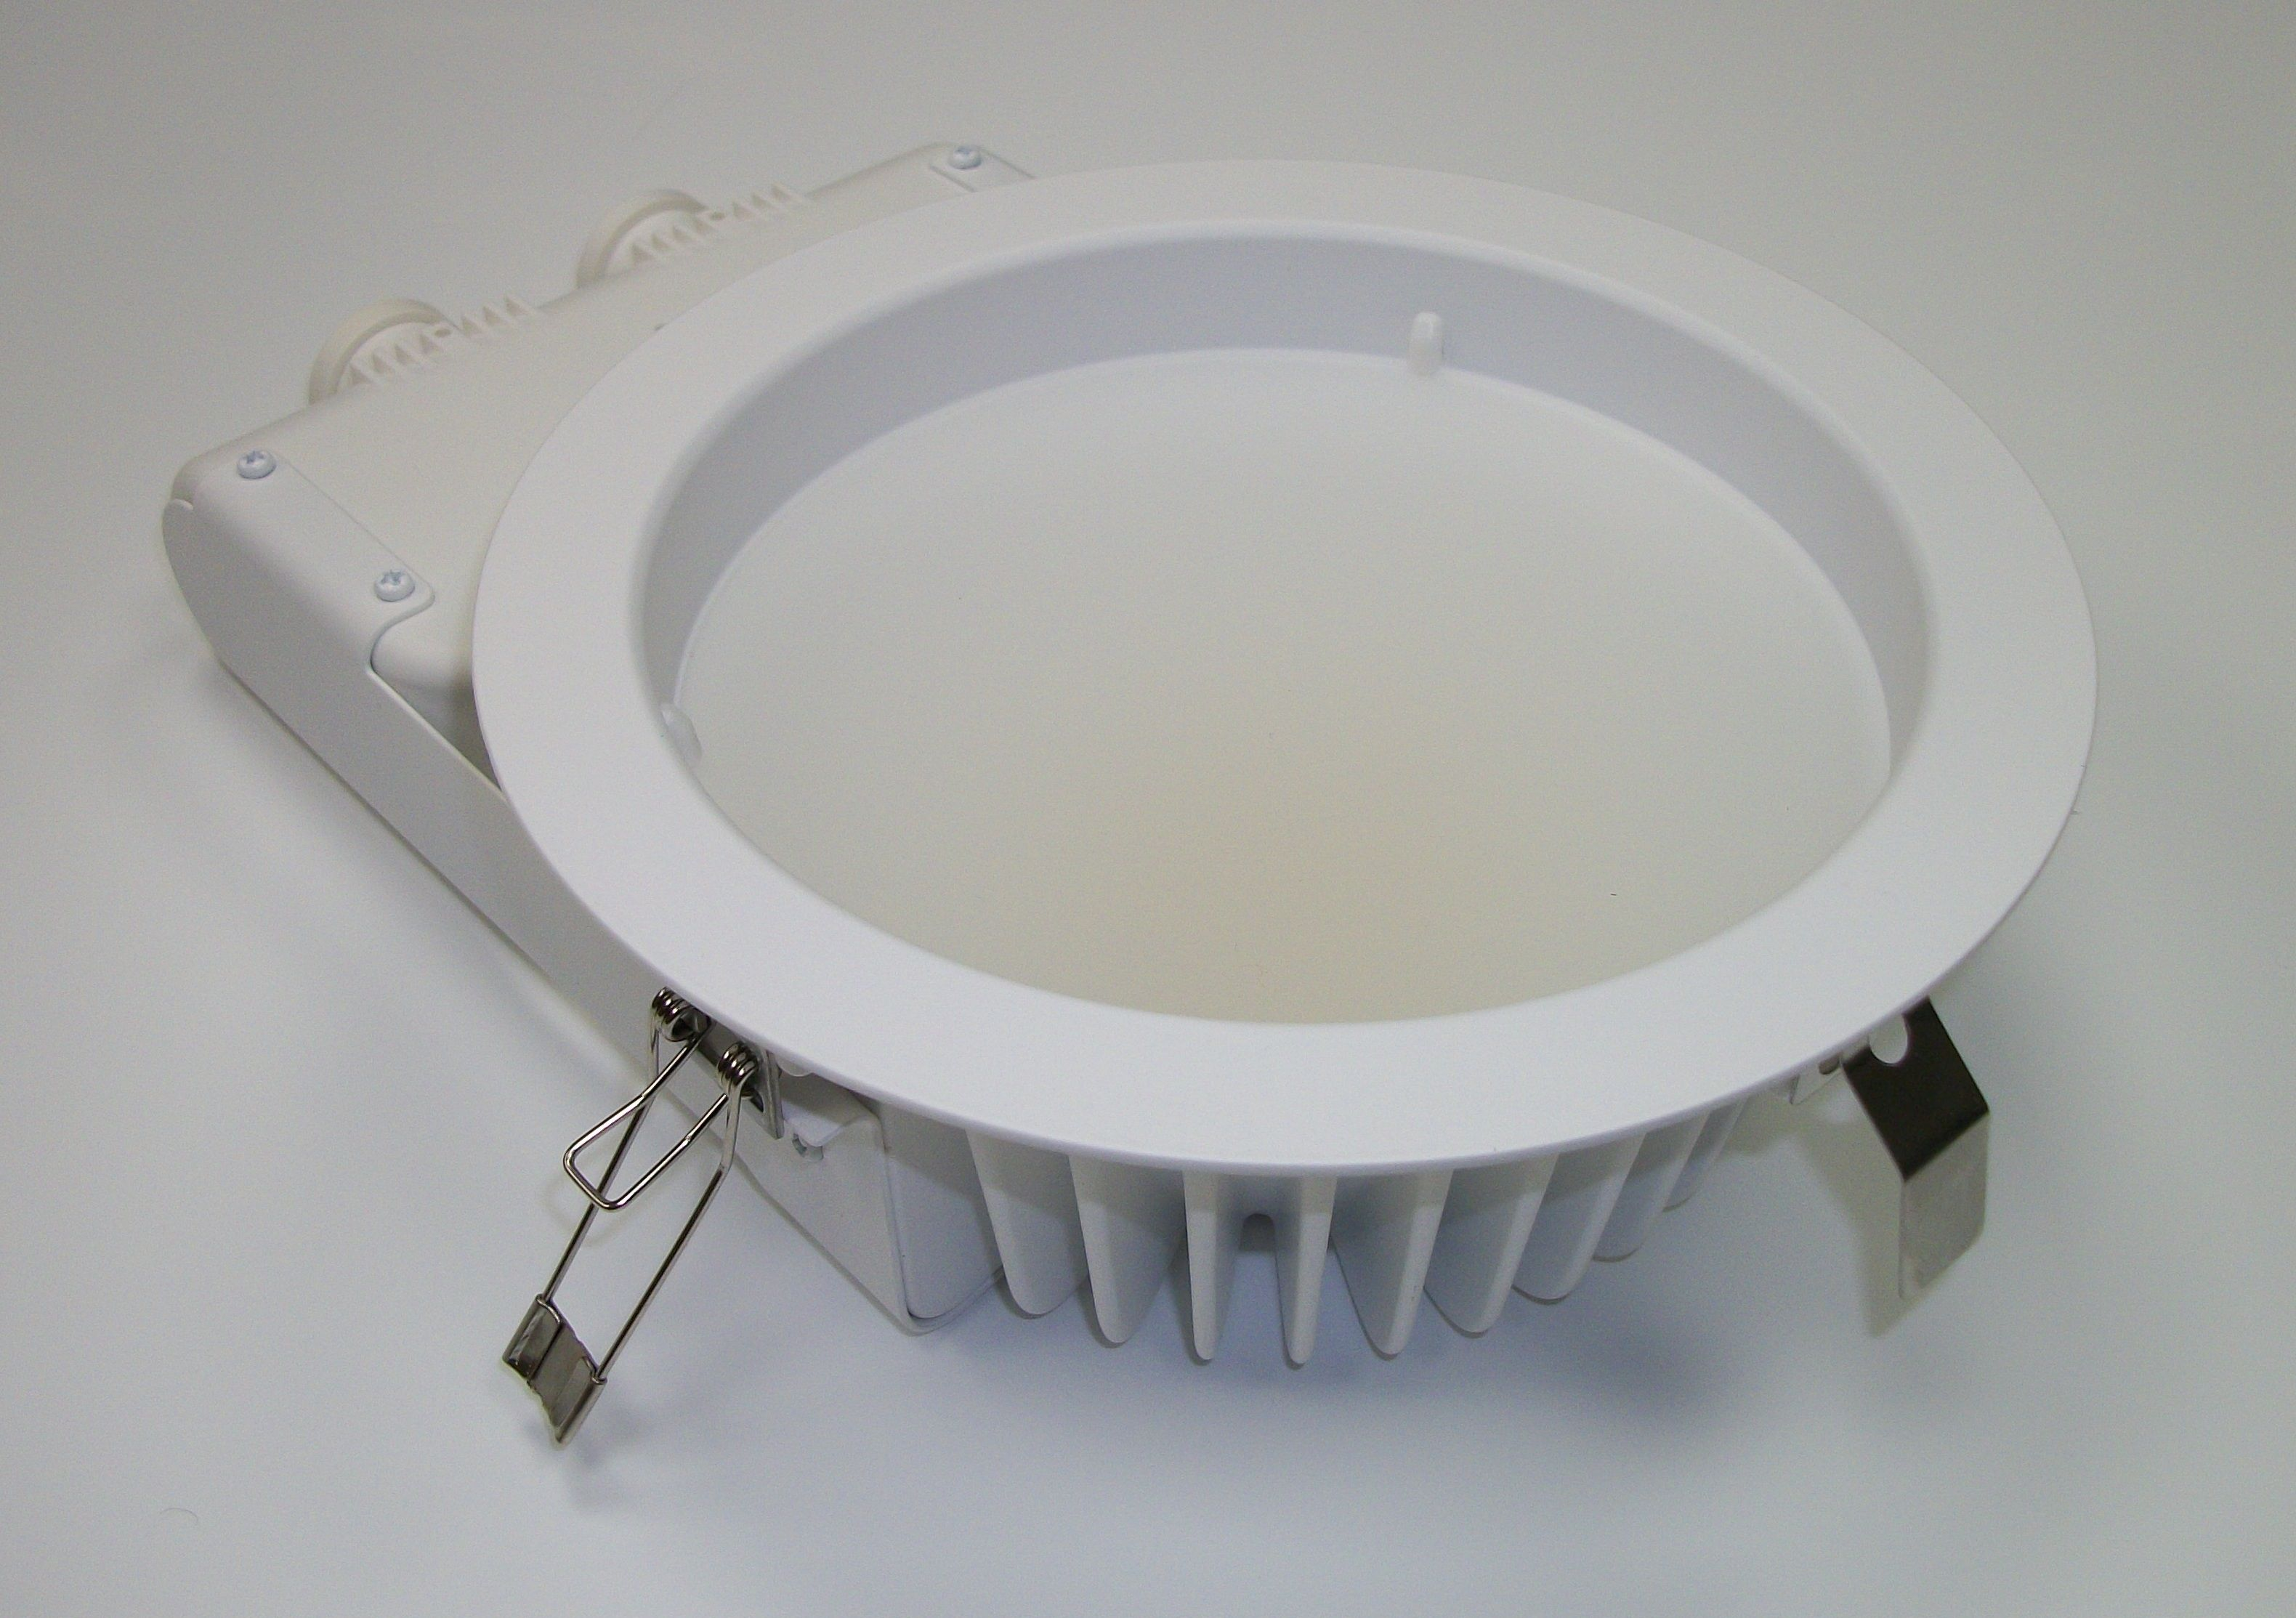 Low Profile Led Recessed Lighting Low Profile Led Recessed Ceiling Lights  Httpscartclub